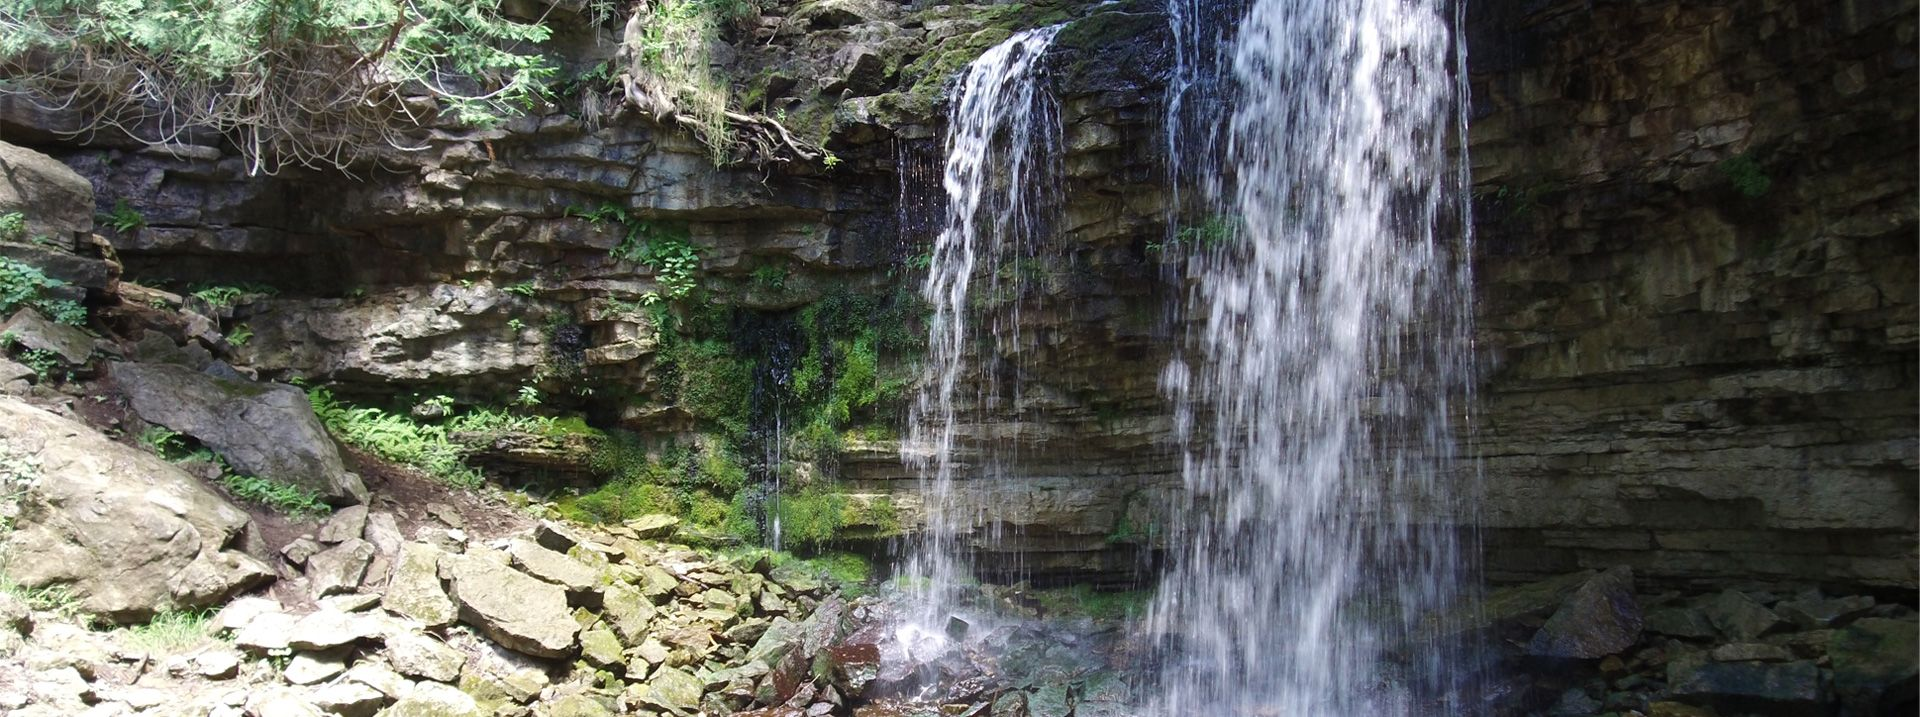 An image of a waterfall repreenting natural heritage.